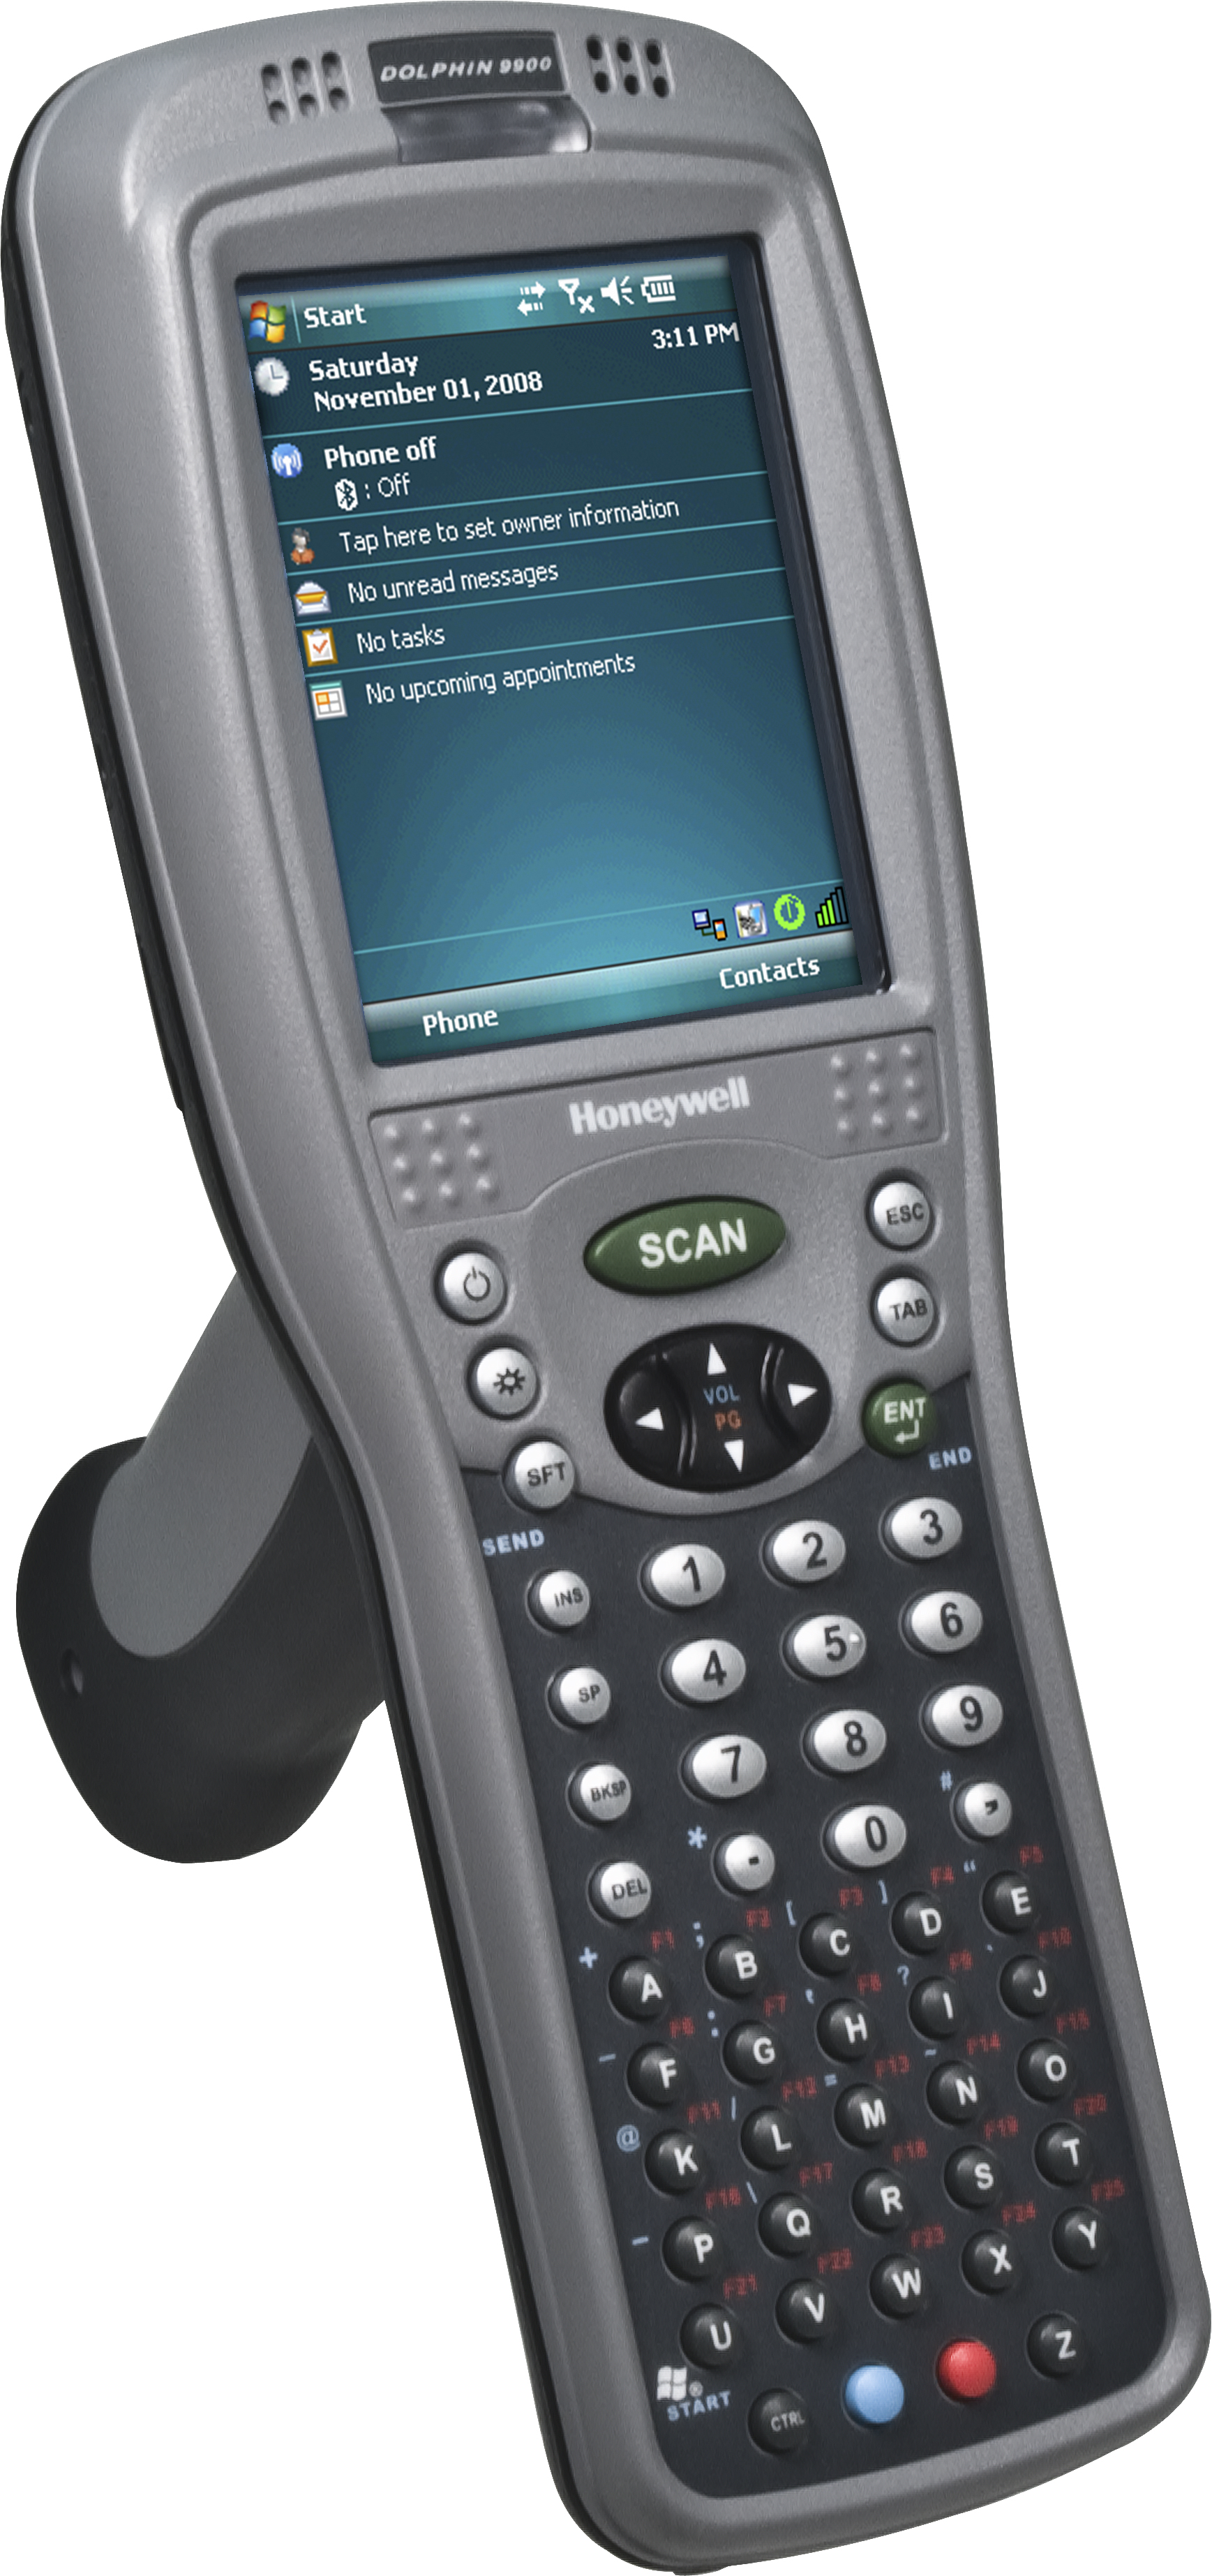 Honeywell Dolphin 9950